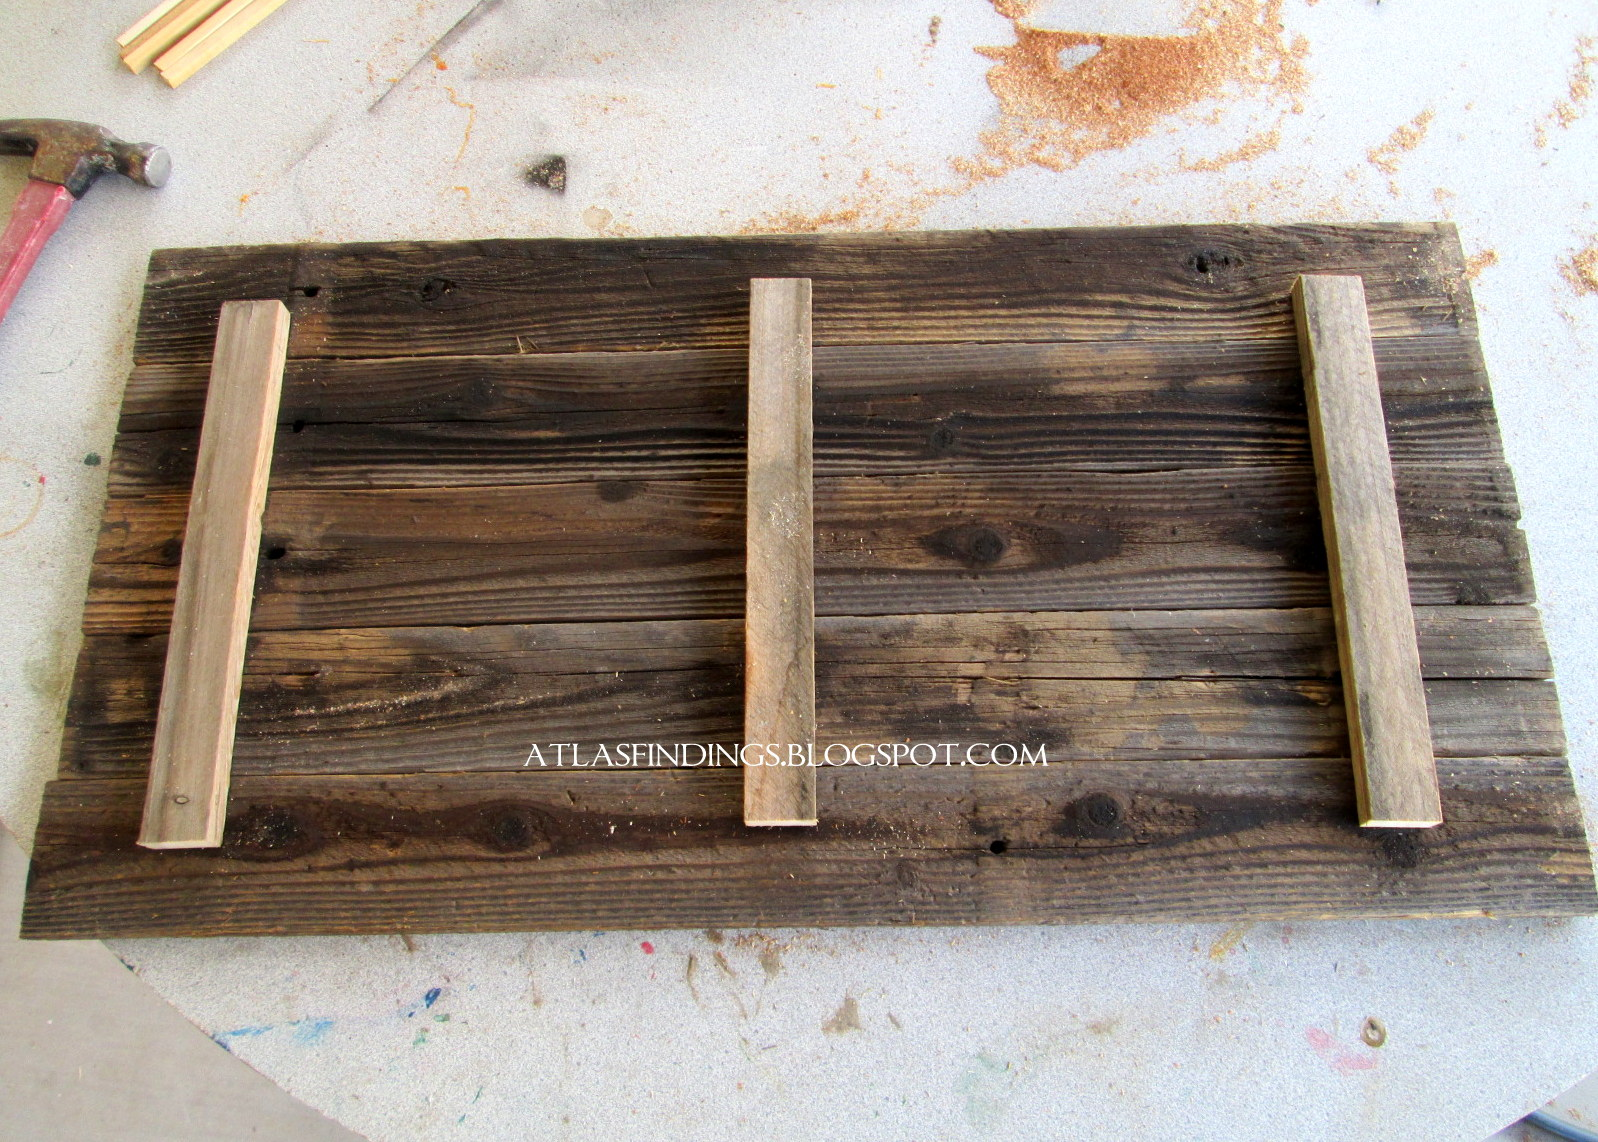 atlas findings recycled fence sign. Black Bedroom Furniture Sets. Home Design Ideas